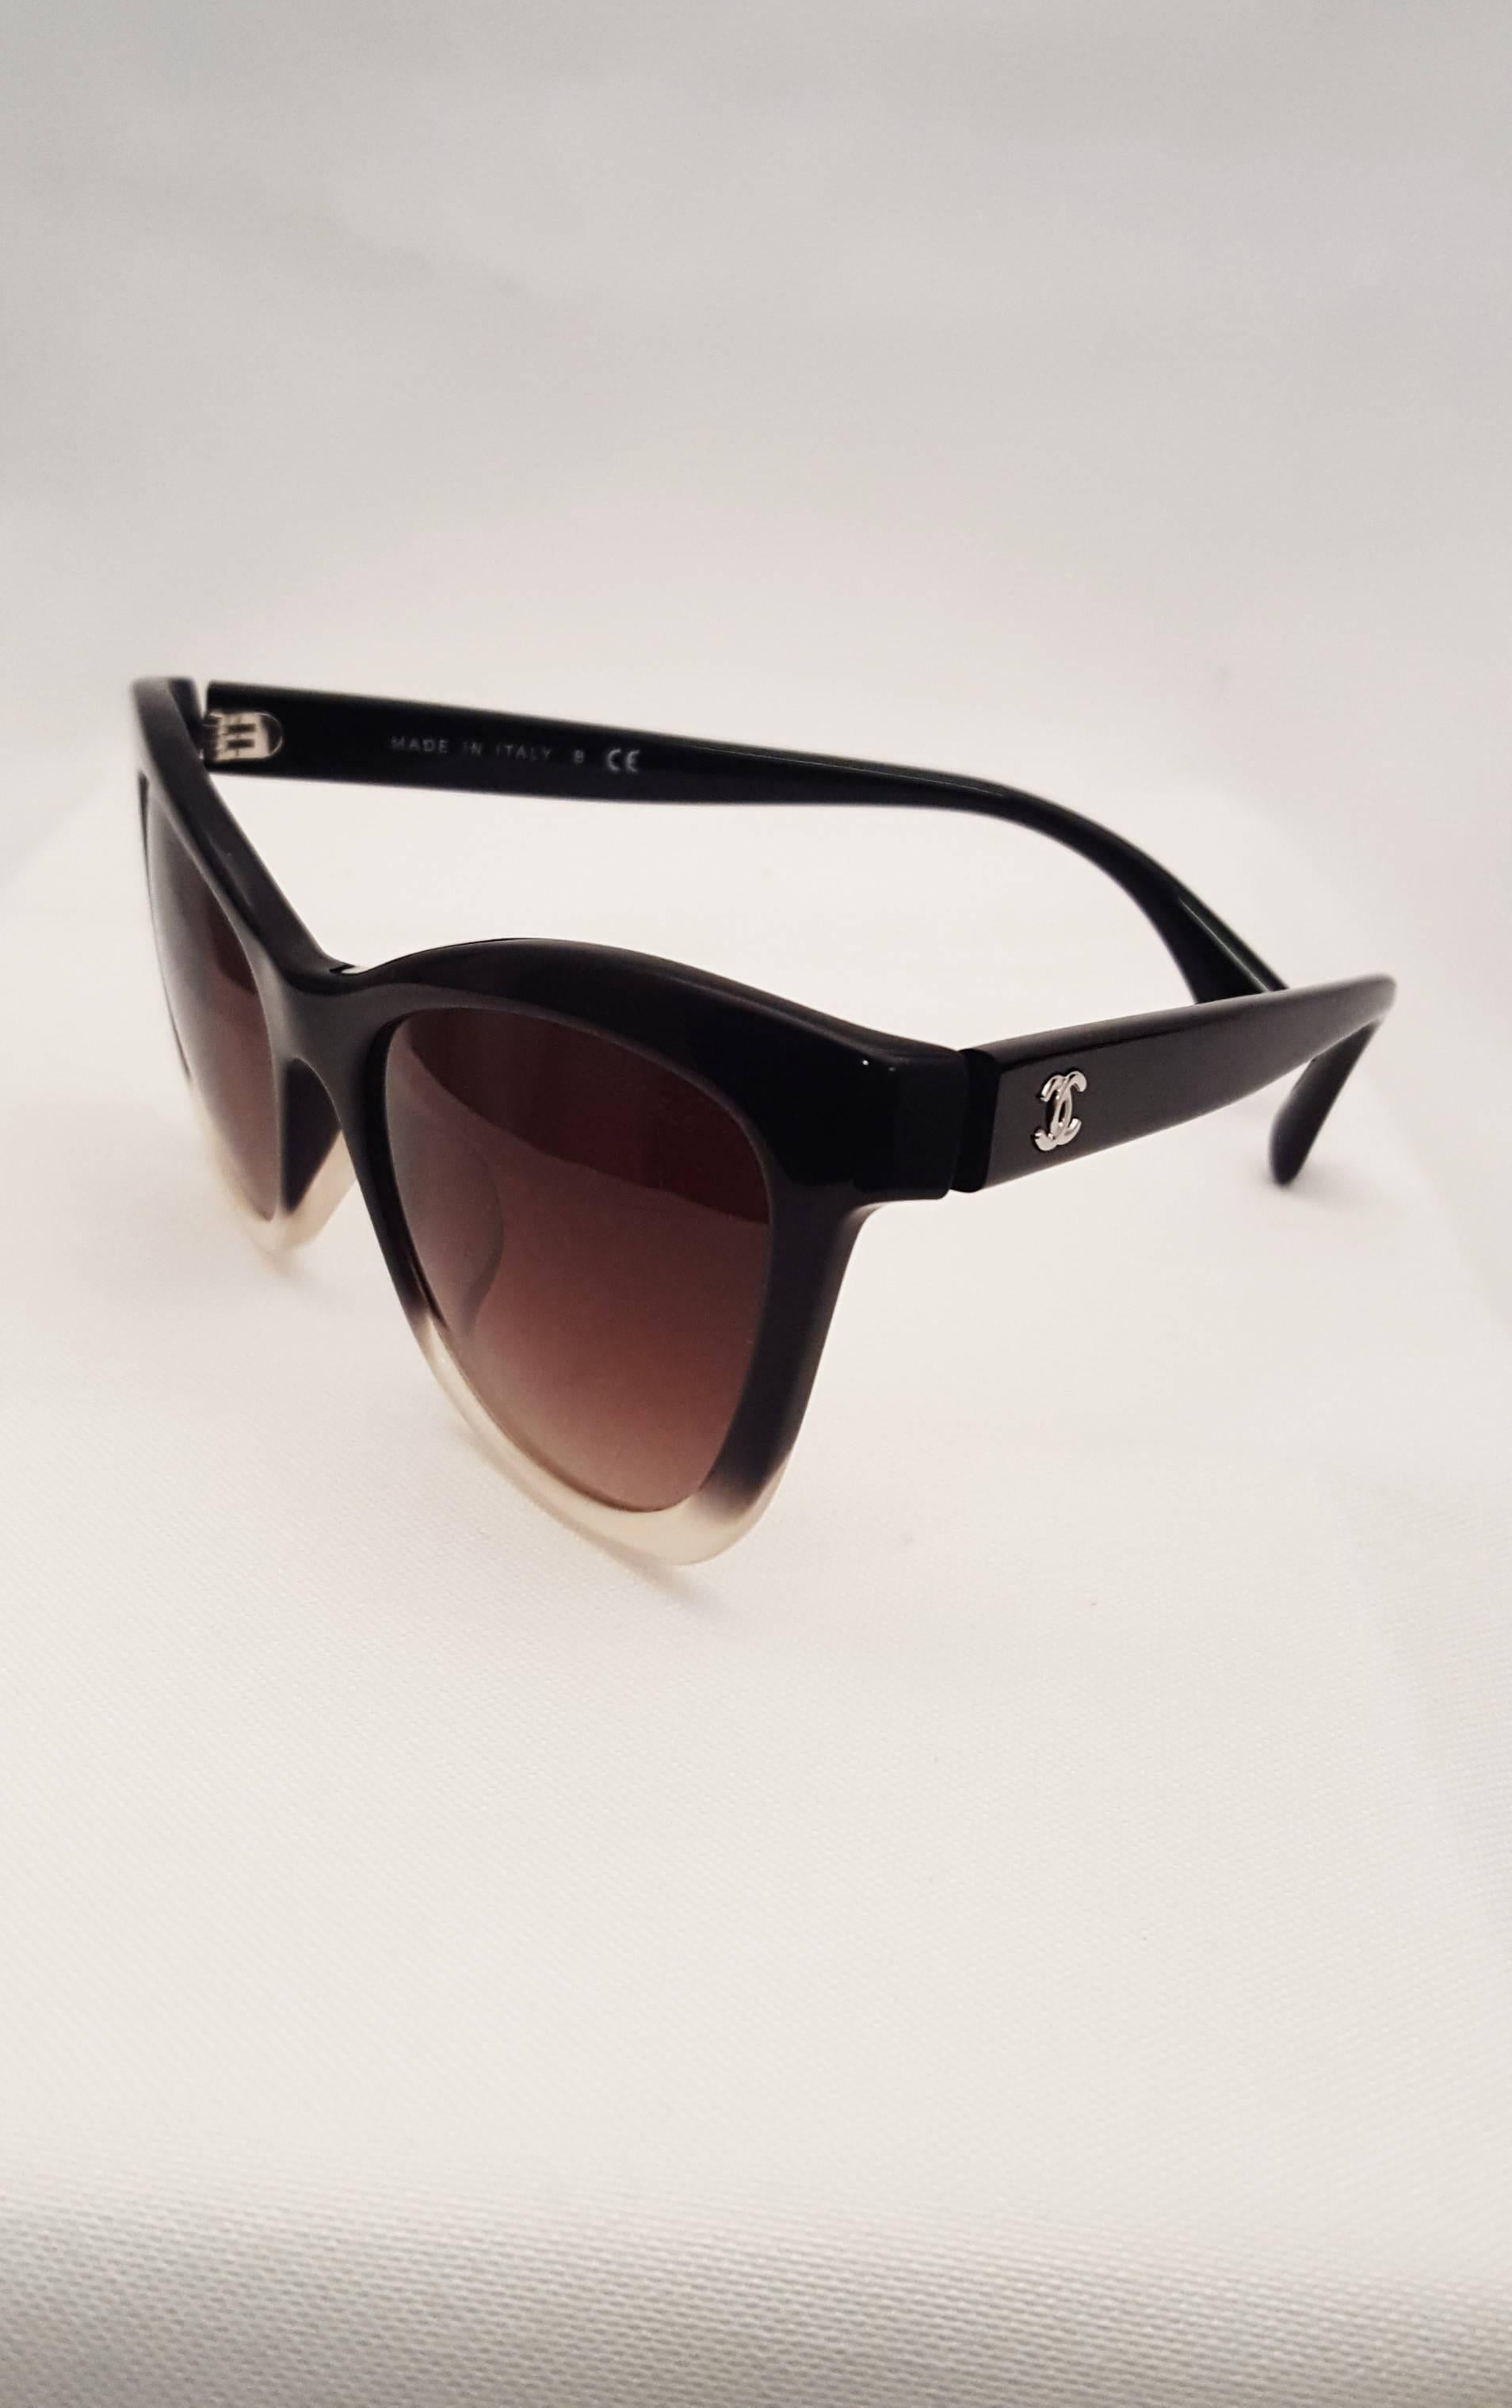 61c8e01d4239 Chanel Black Ombre Polarized Cat Eye Style Sunglasses at 1stdibs